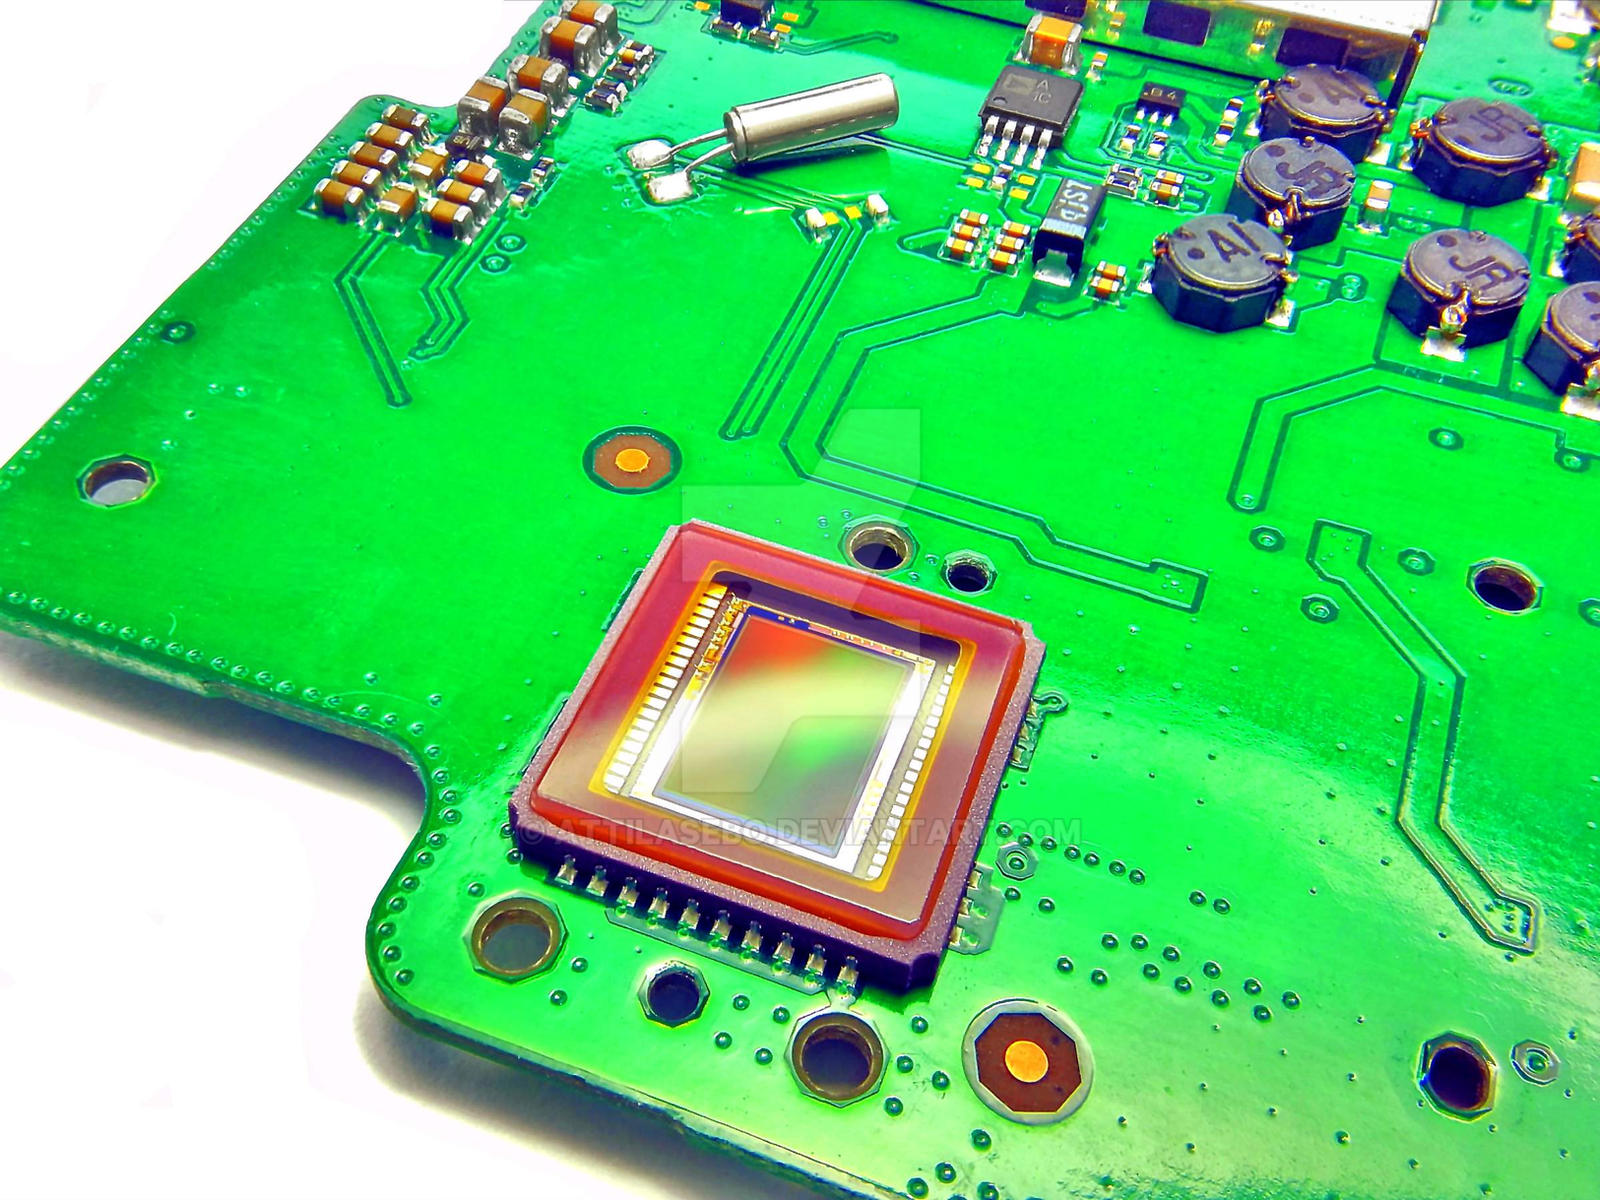 compact camera CCD and main board